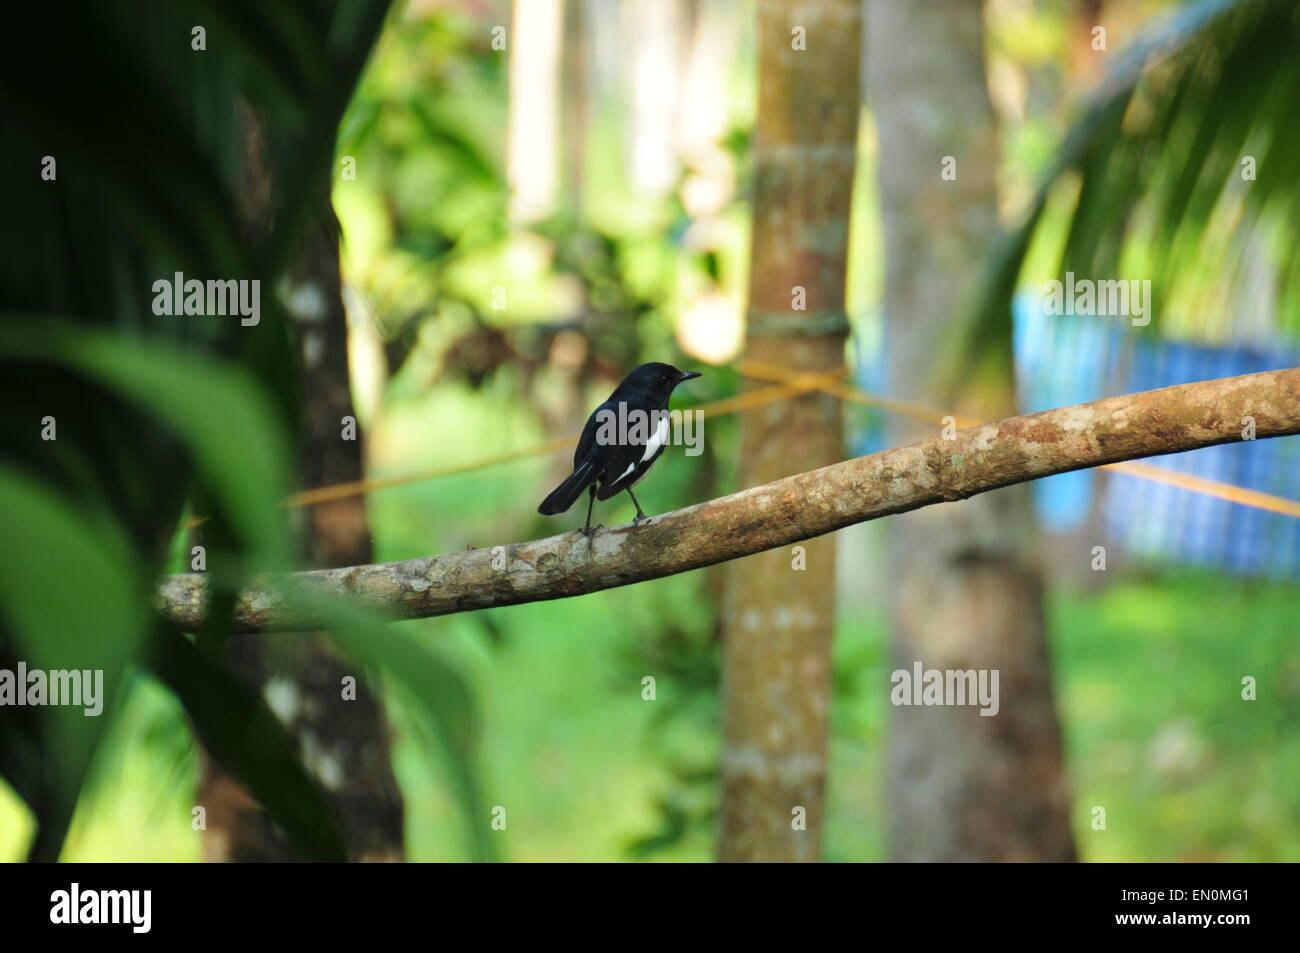 A small black bird sitting on a branch. - Stock Image